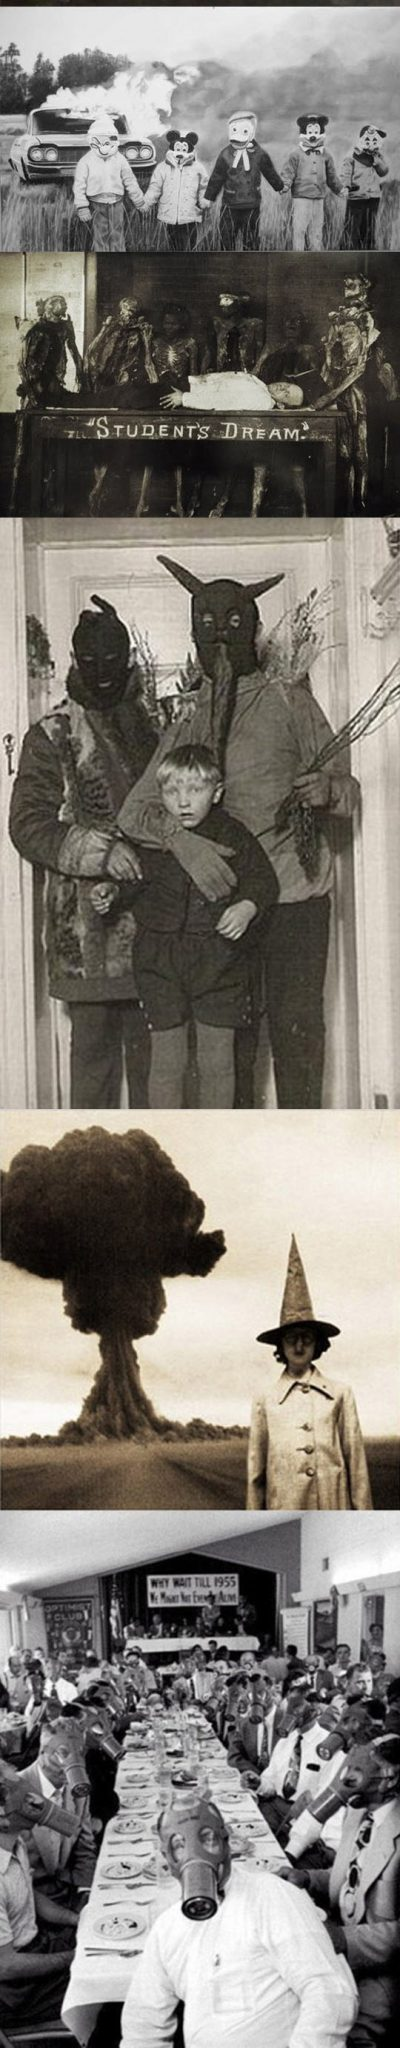 Creepy old pictures from the past